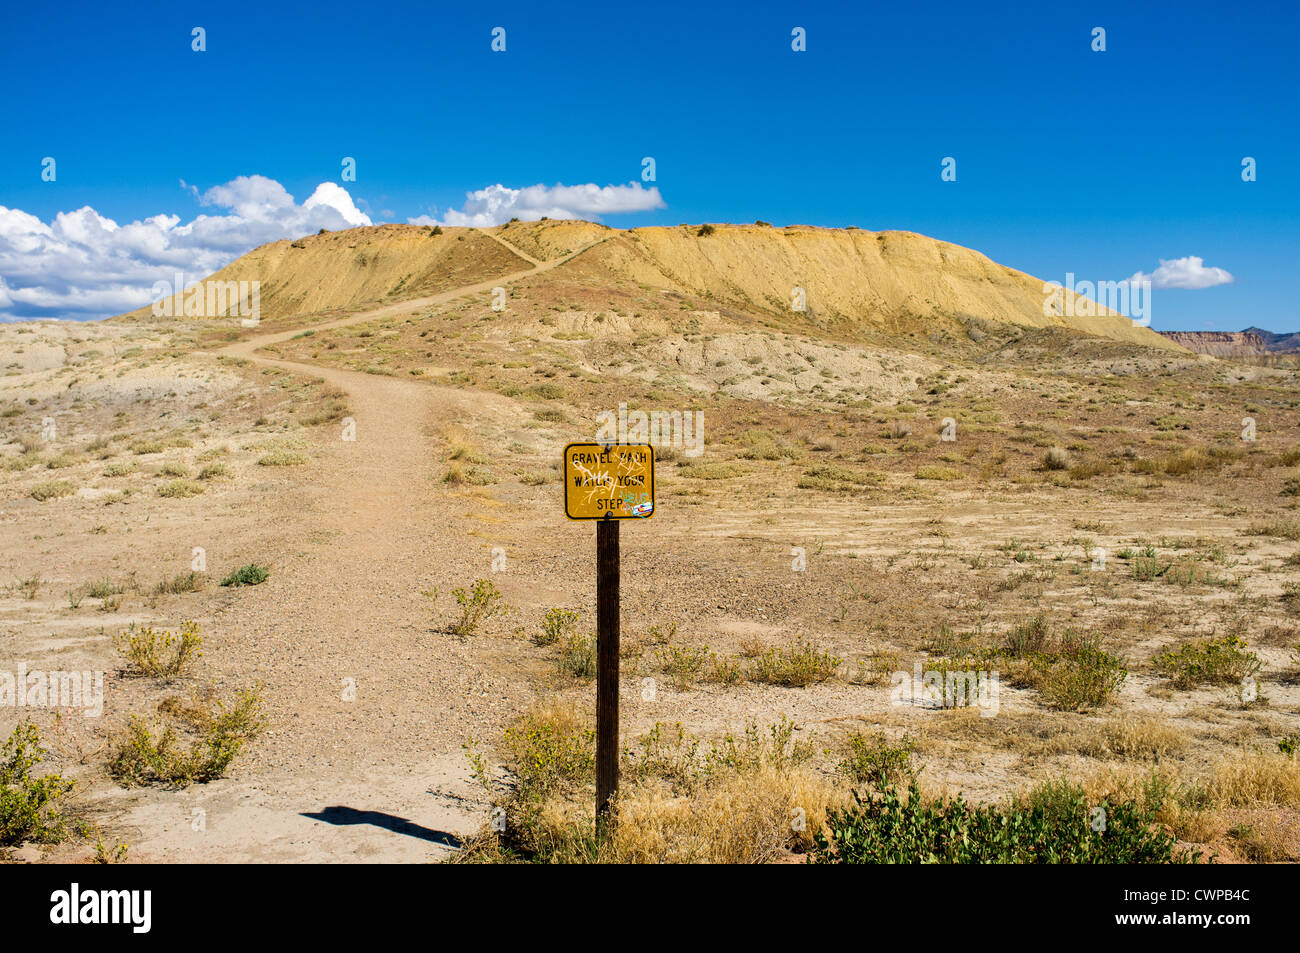 A hiking trail leads off into the desert. - Stock Image